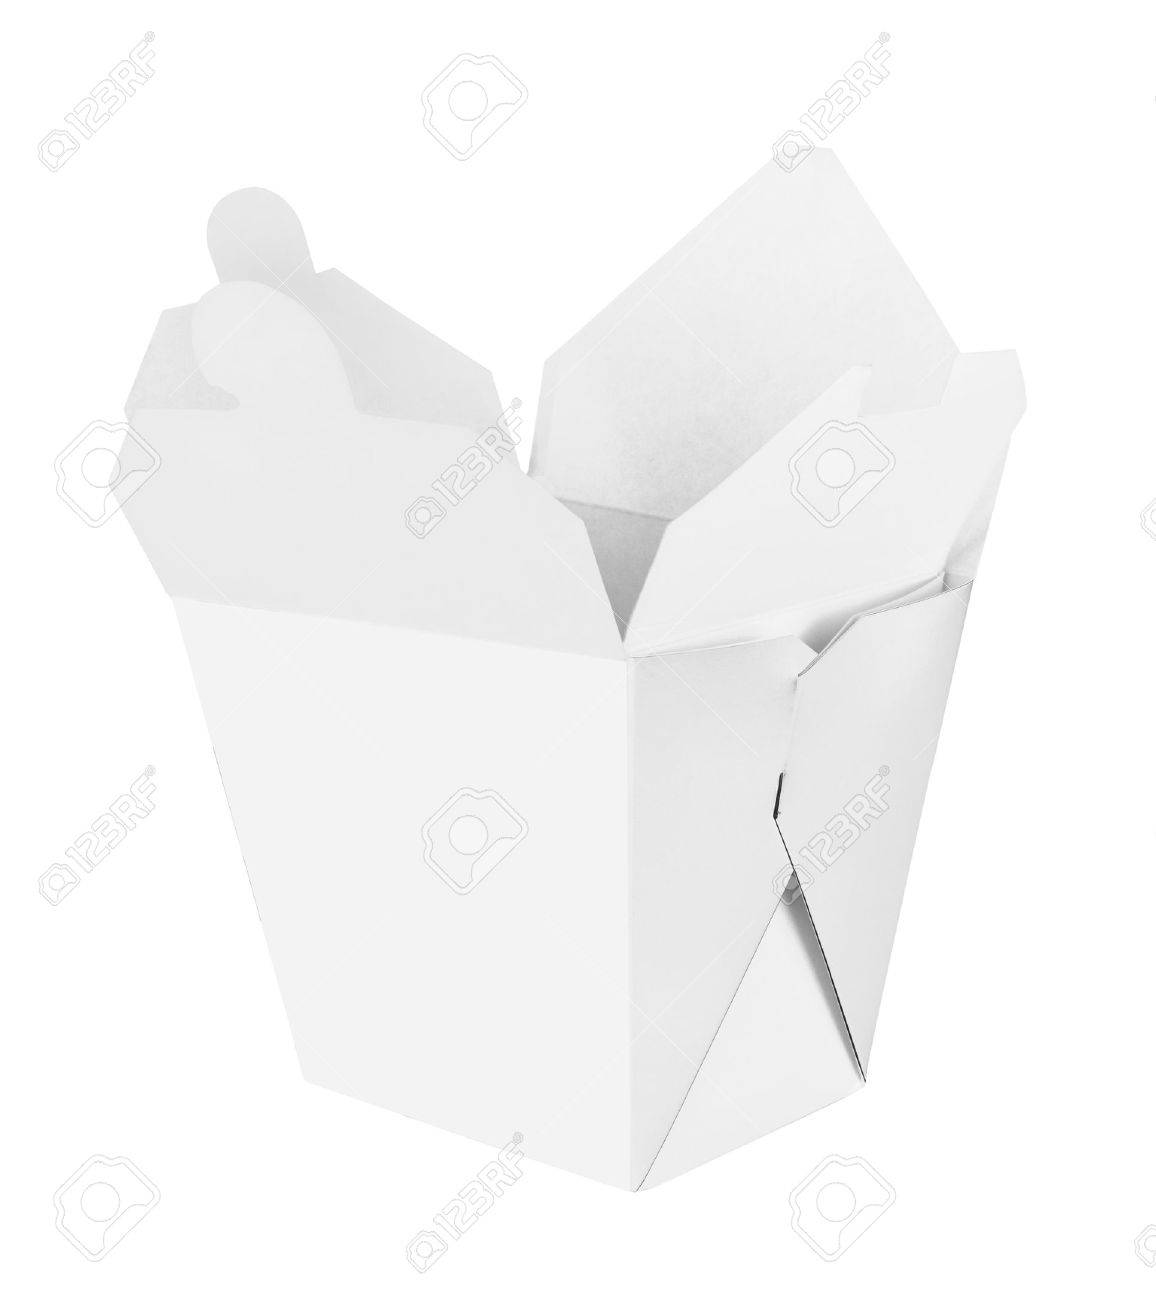 Blank Chinese food container isolated on white background - 20192903